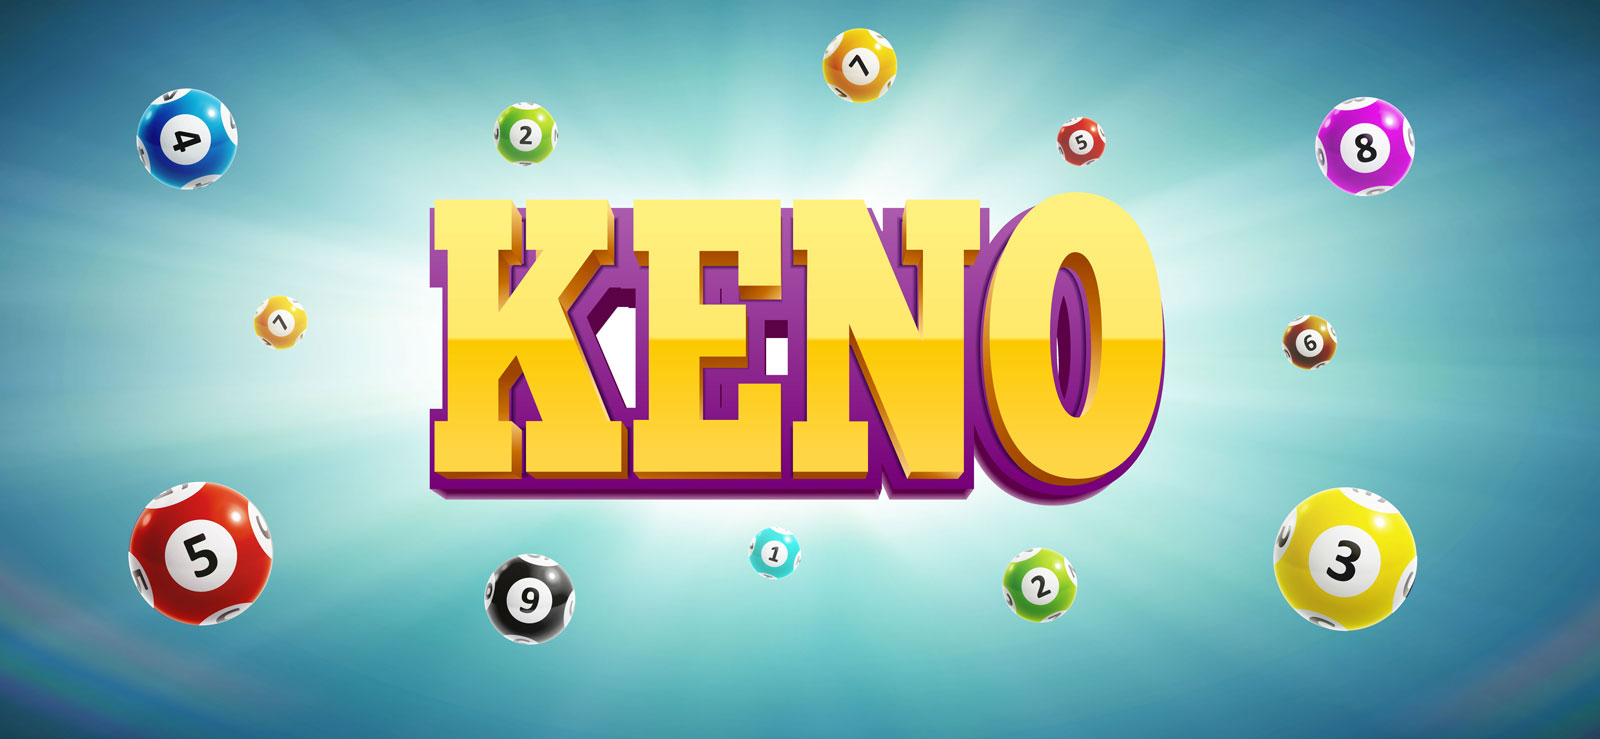 How to Win At Keno - 18 Steps to Increase Your Chance - Nerdsofgambling